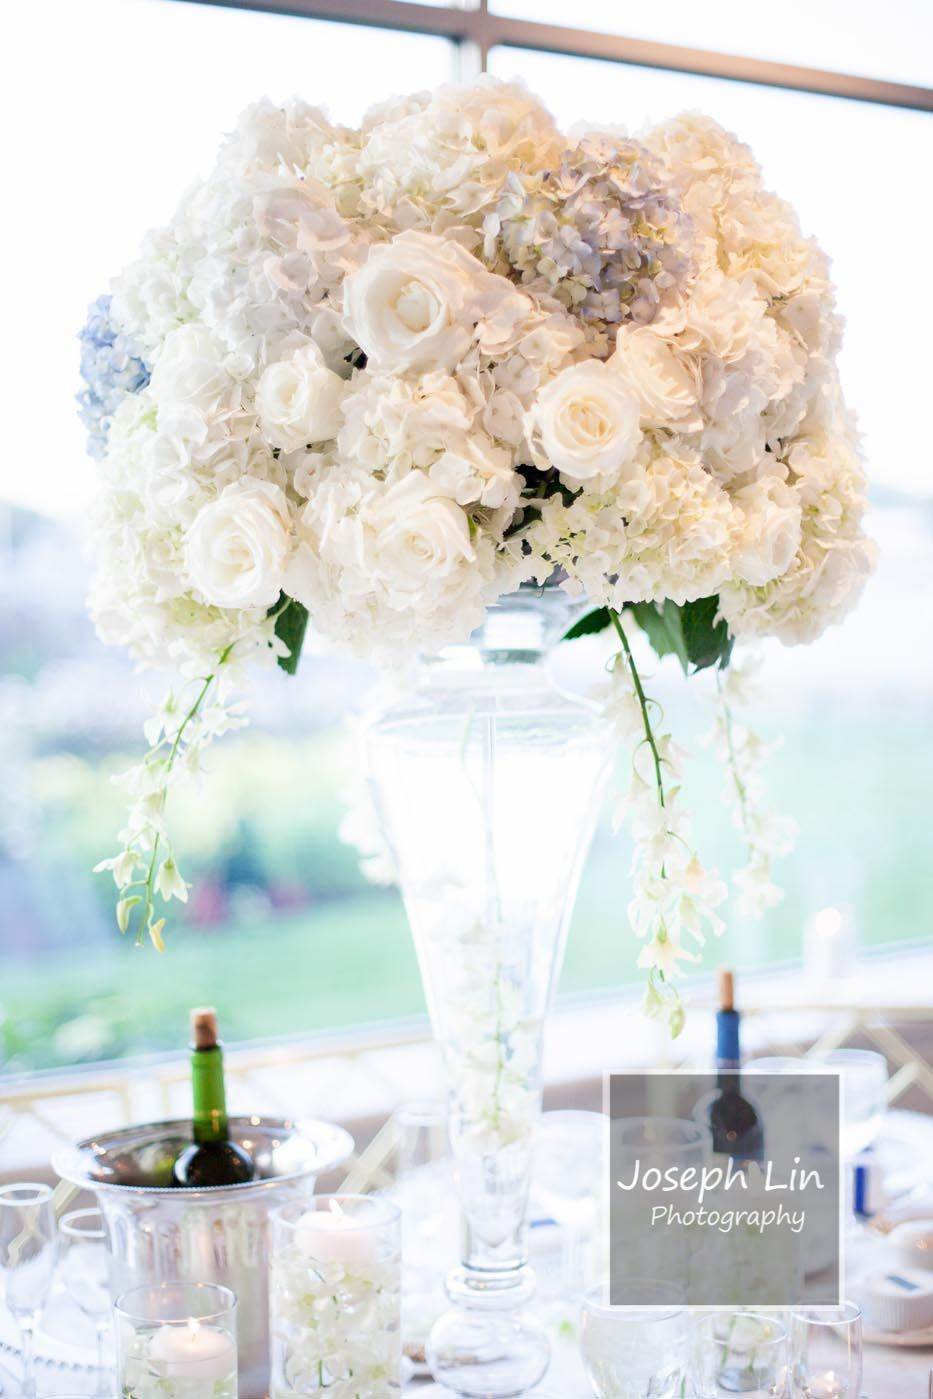 Wedding Flower Centerpiece | Our Wedding 6.29.13 | Pinterest ...